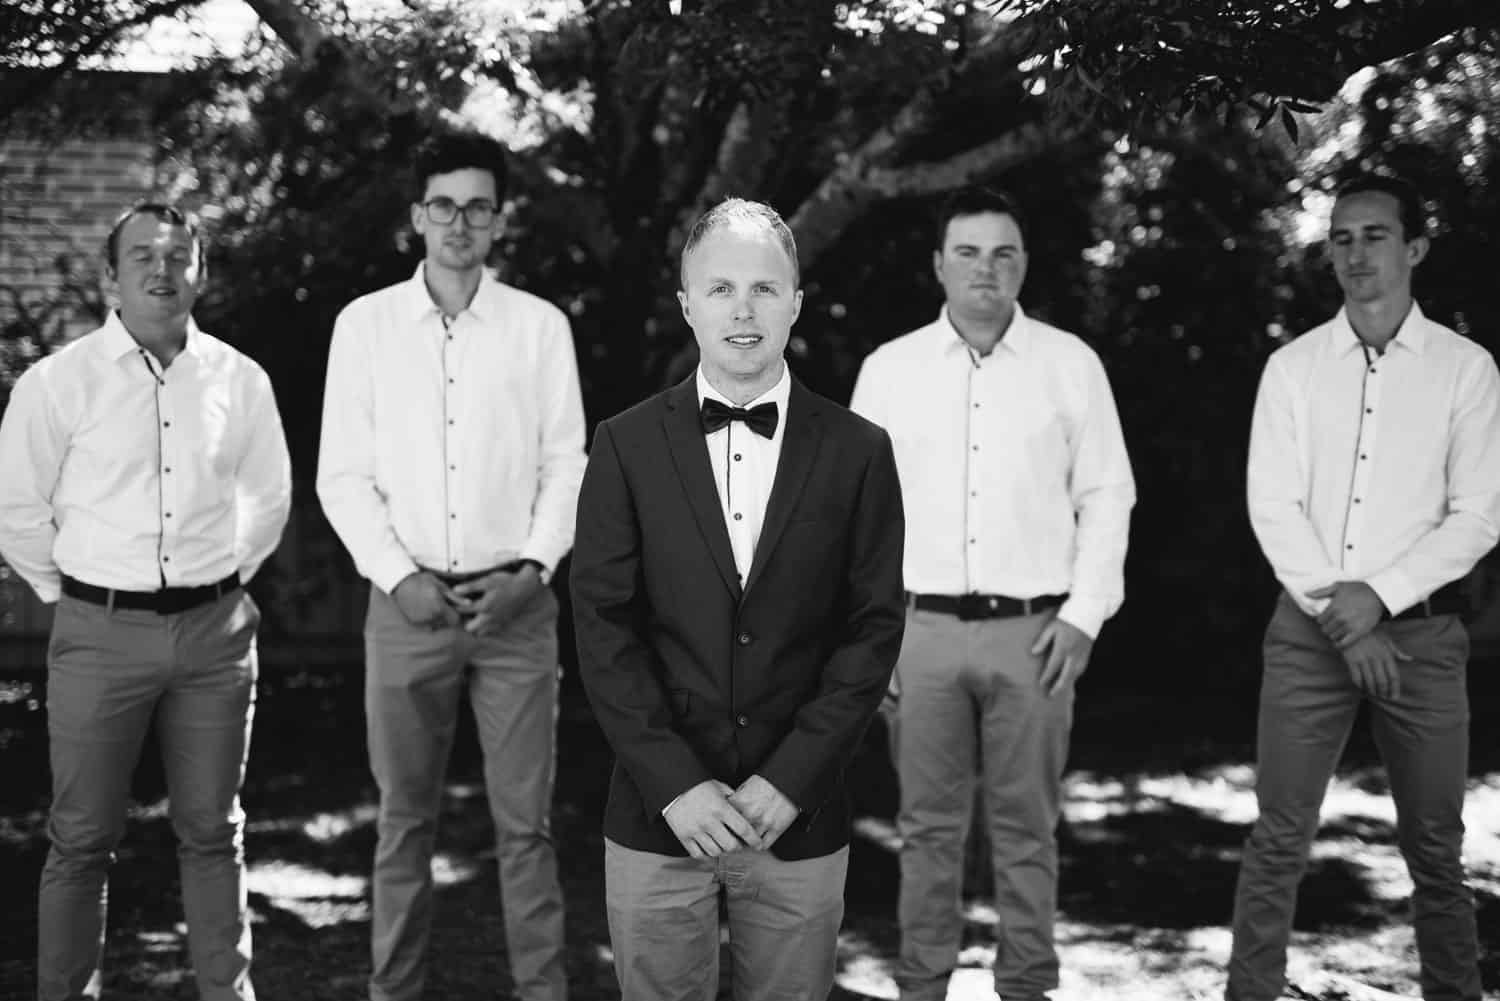 Groom and groomsmen at Ballarat